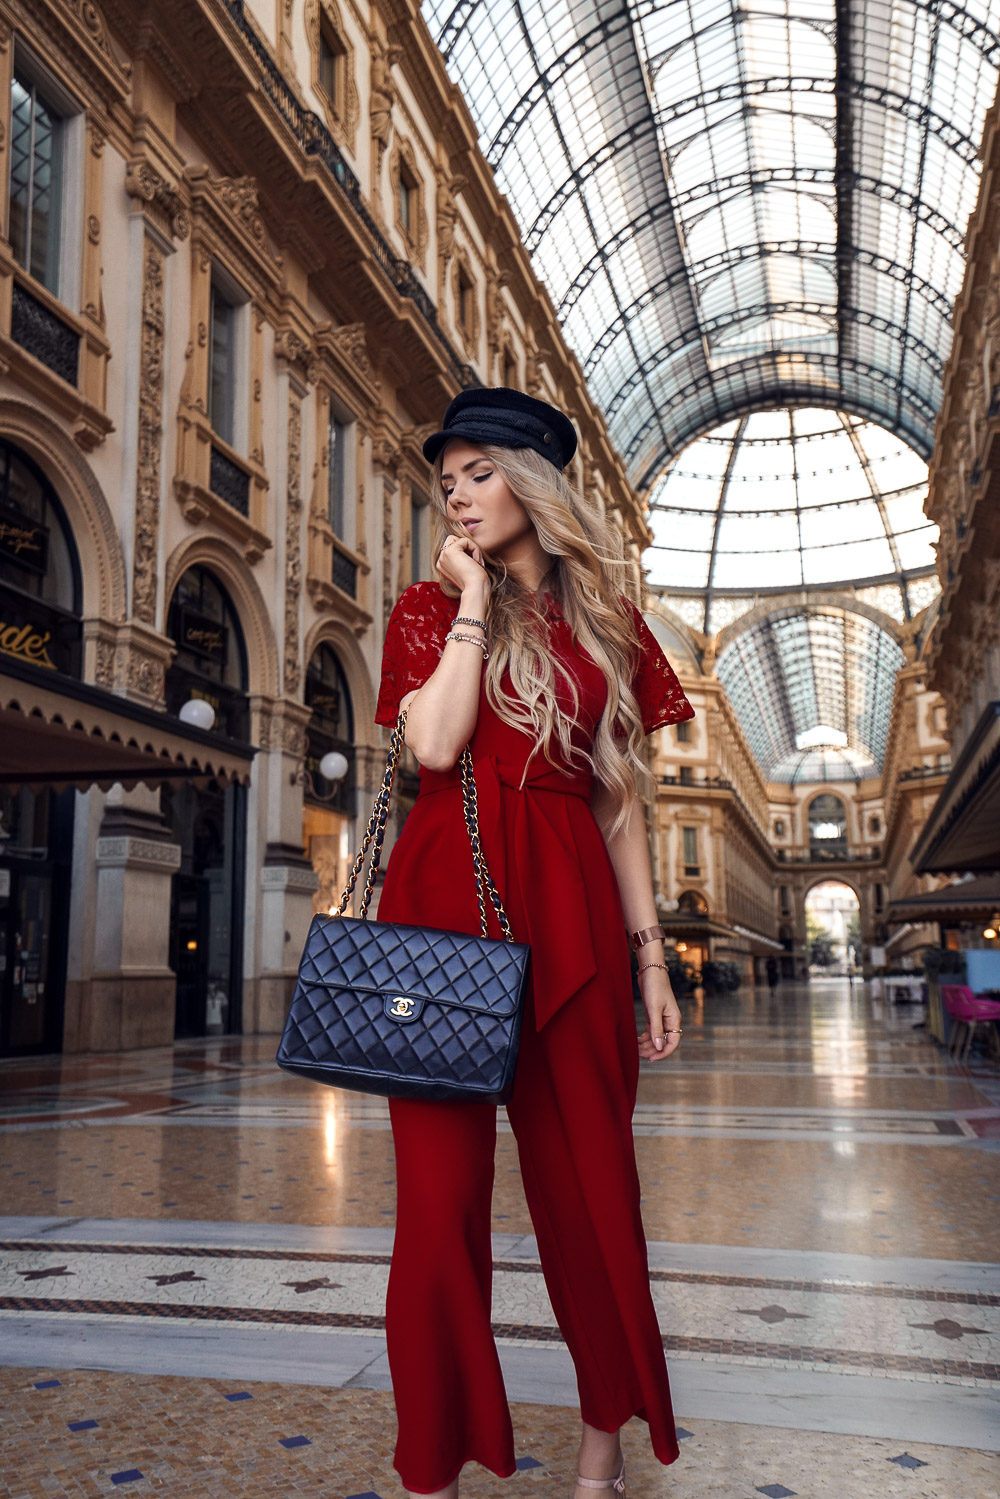 Roter Jumpsuit-Chanel Tasche-Baker Boy-Mailand